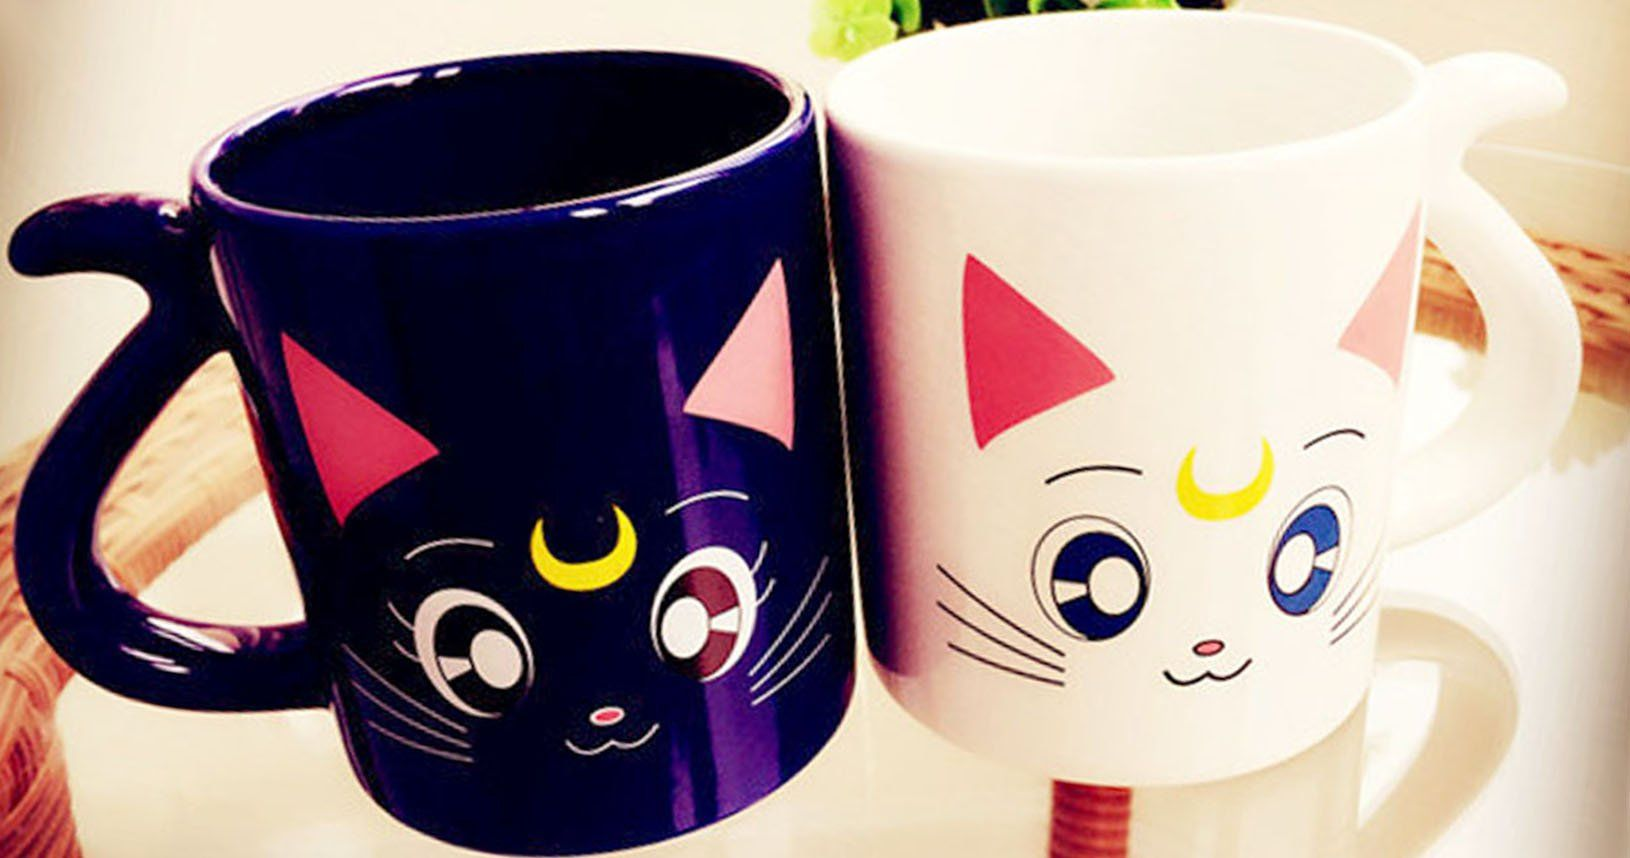 Kick start theday and add somecuteness toyour mourning coffee with these guardian catmugs! TheLuna and Artemis mugs have handle shaped cat tails for grasping and creates the perfect gift to share with that special Sailor Moon fan in your life!